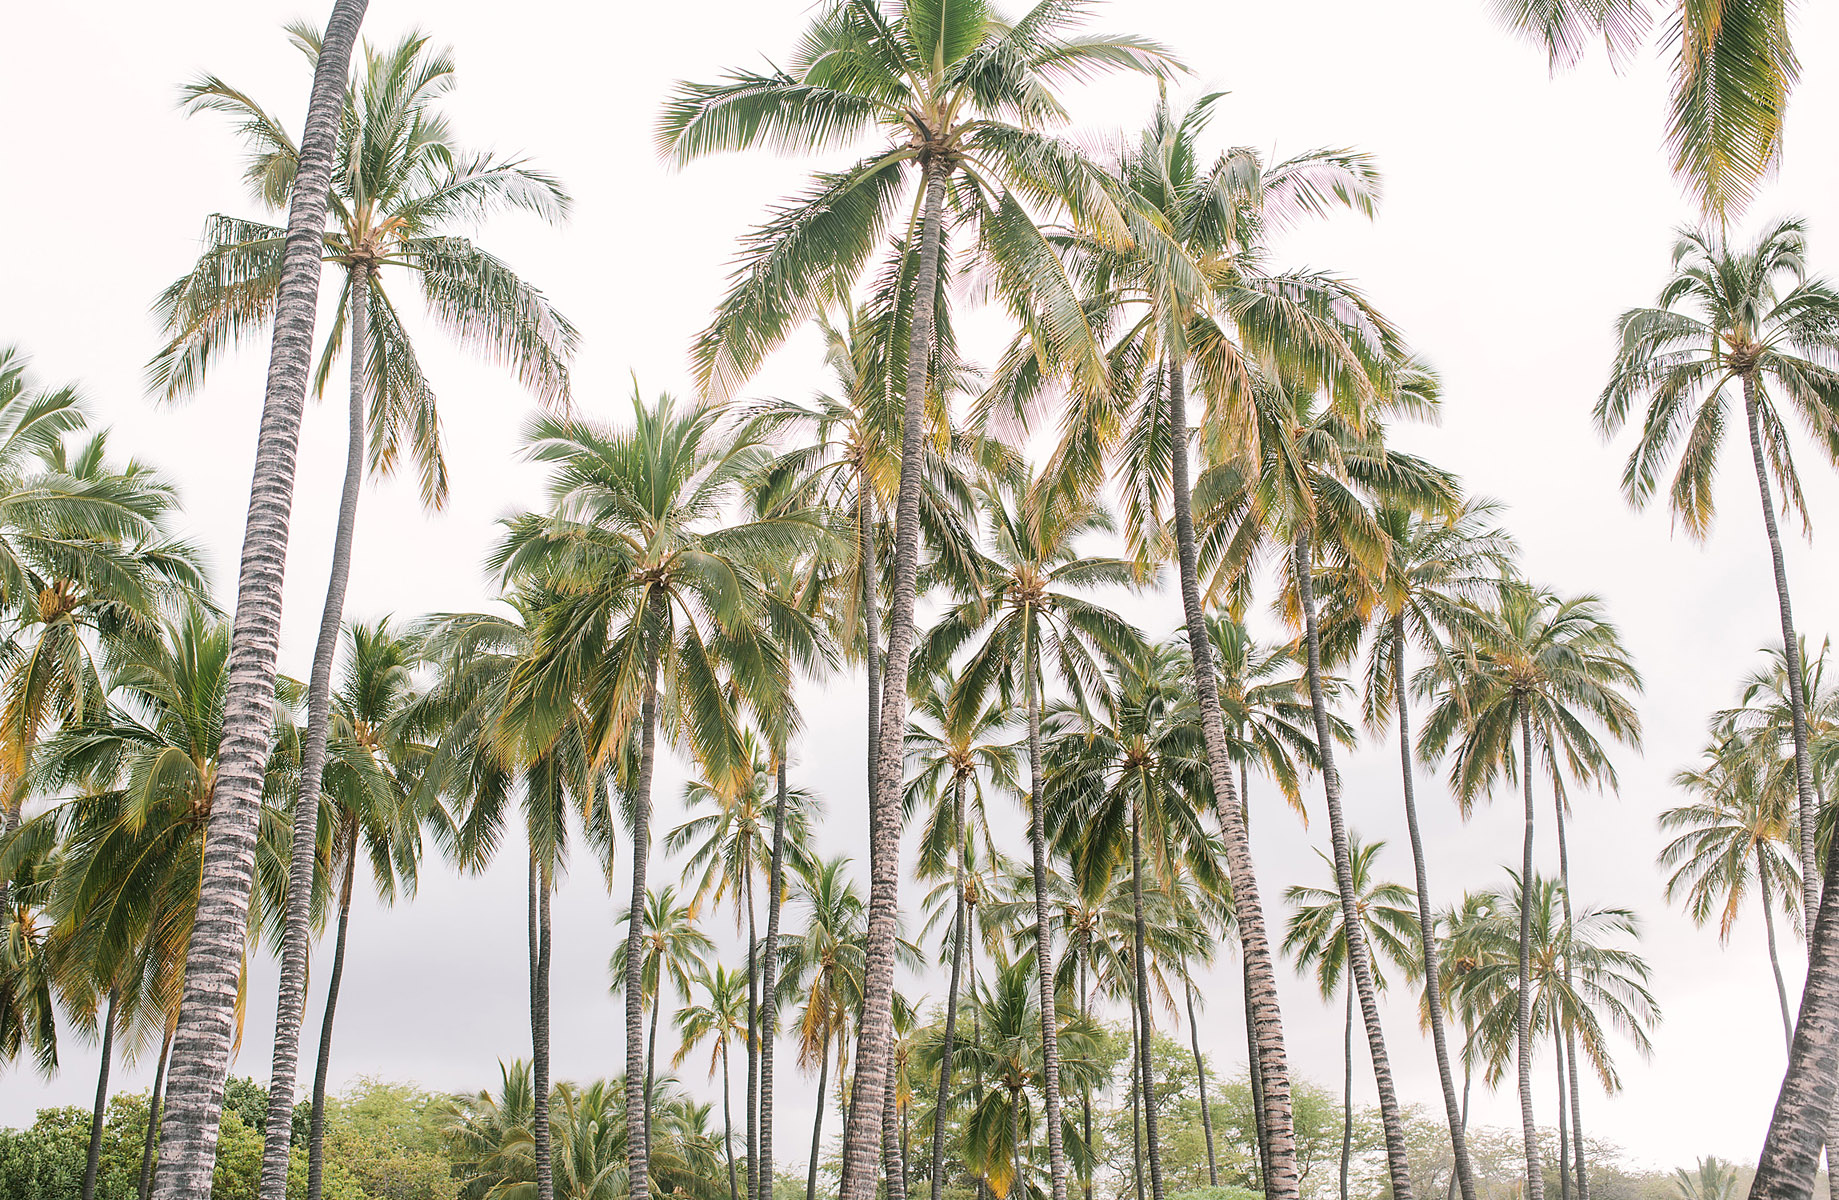 001_Elena_Hawaii_Palms